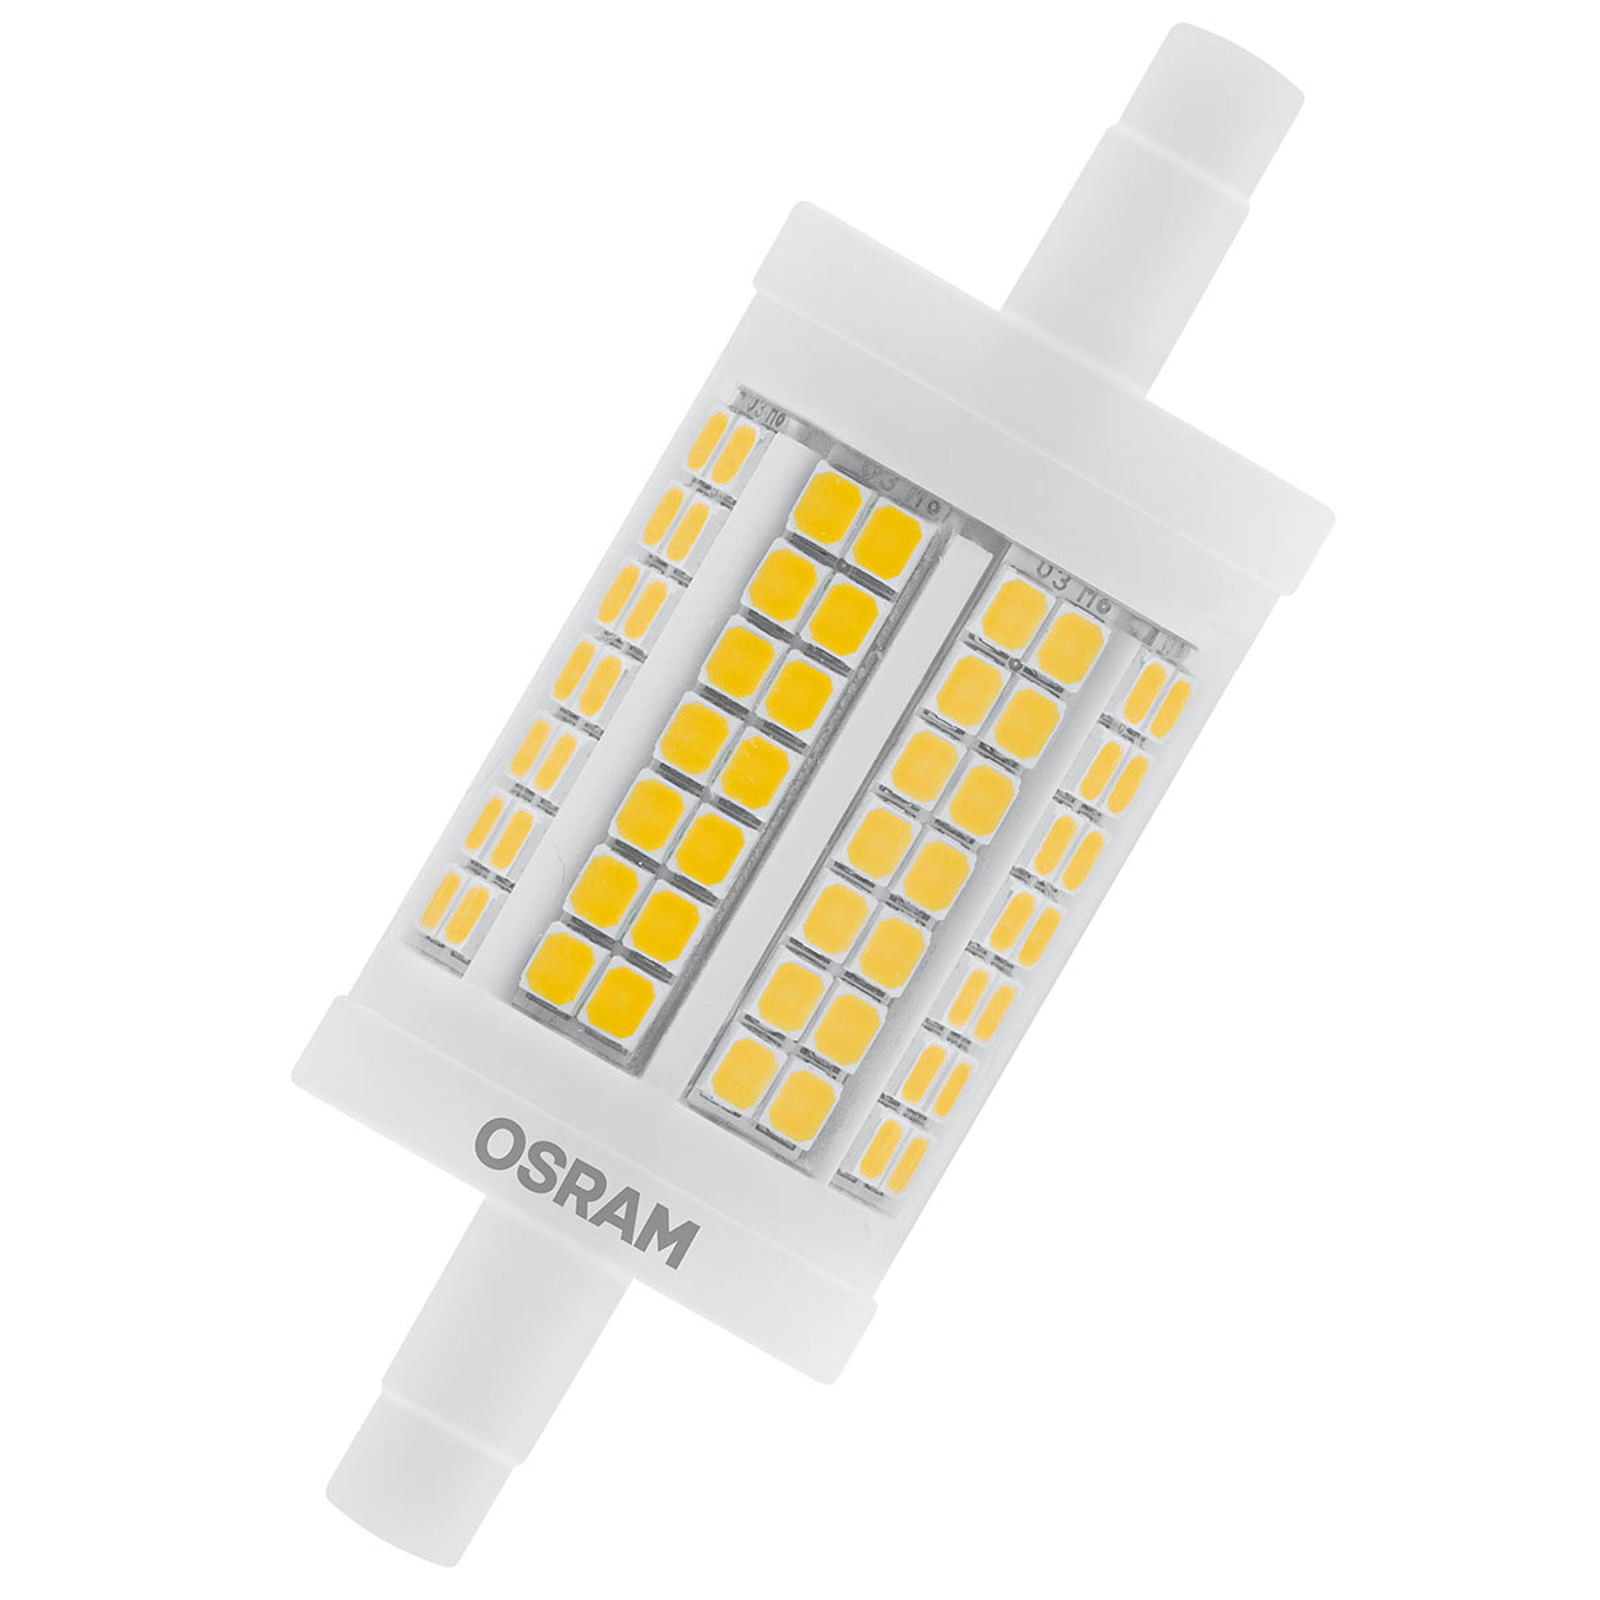 OSRAM tube LED R7s 11,5 W blanc chaud, 1 521 lm